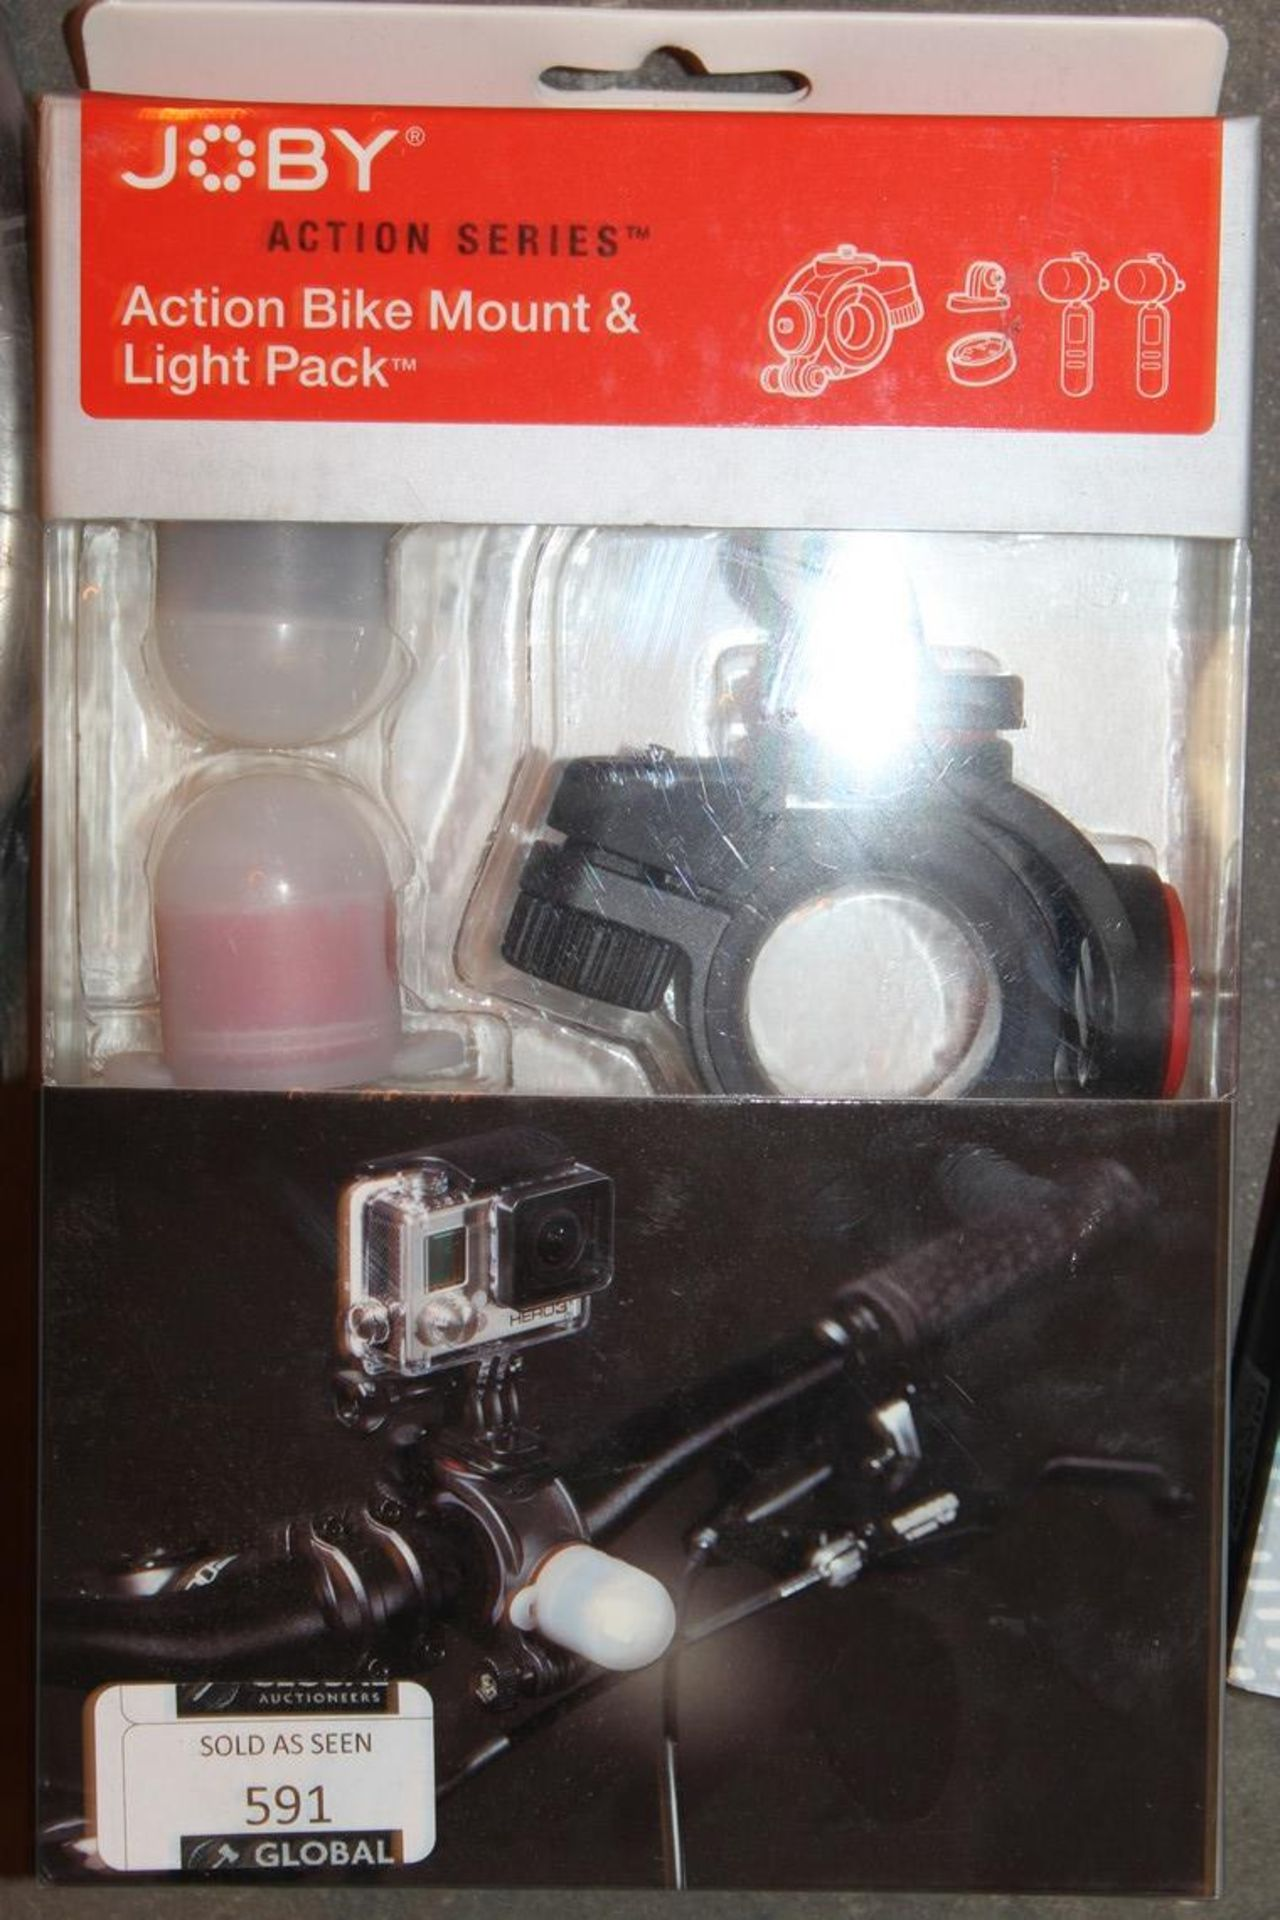 Lot 591 - Boxed Joby Action Series Bike Mount And Light Pack RRP £70 (Pictures Are For Illustration Purposes